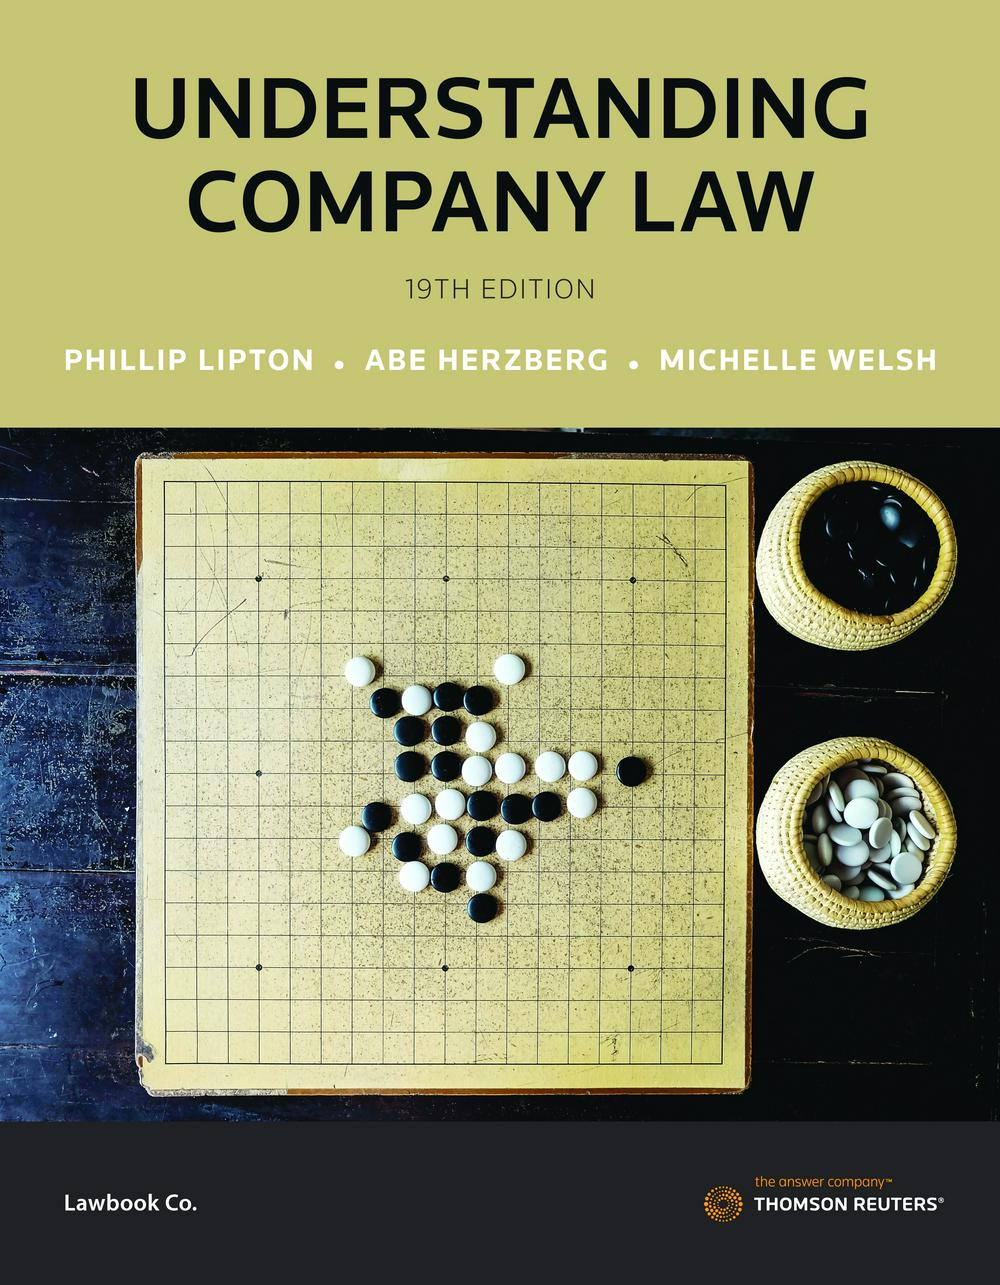 Understanding Company Law by Phillip Lipton,Abe Herzberg,Michelle Welsh, ISBN: 9780455240213